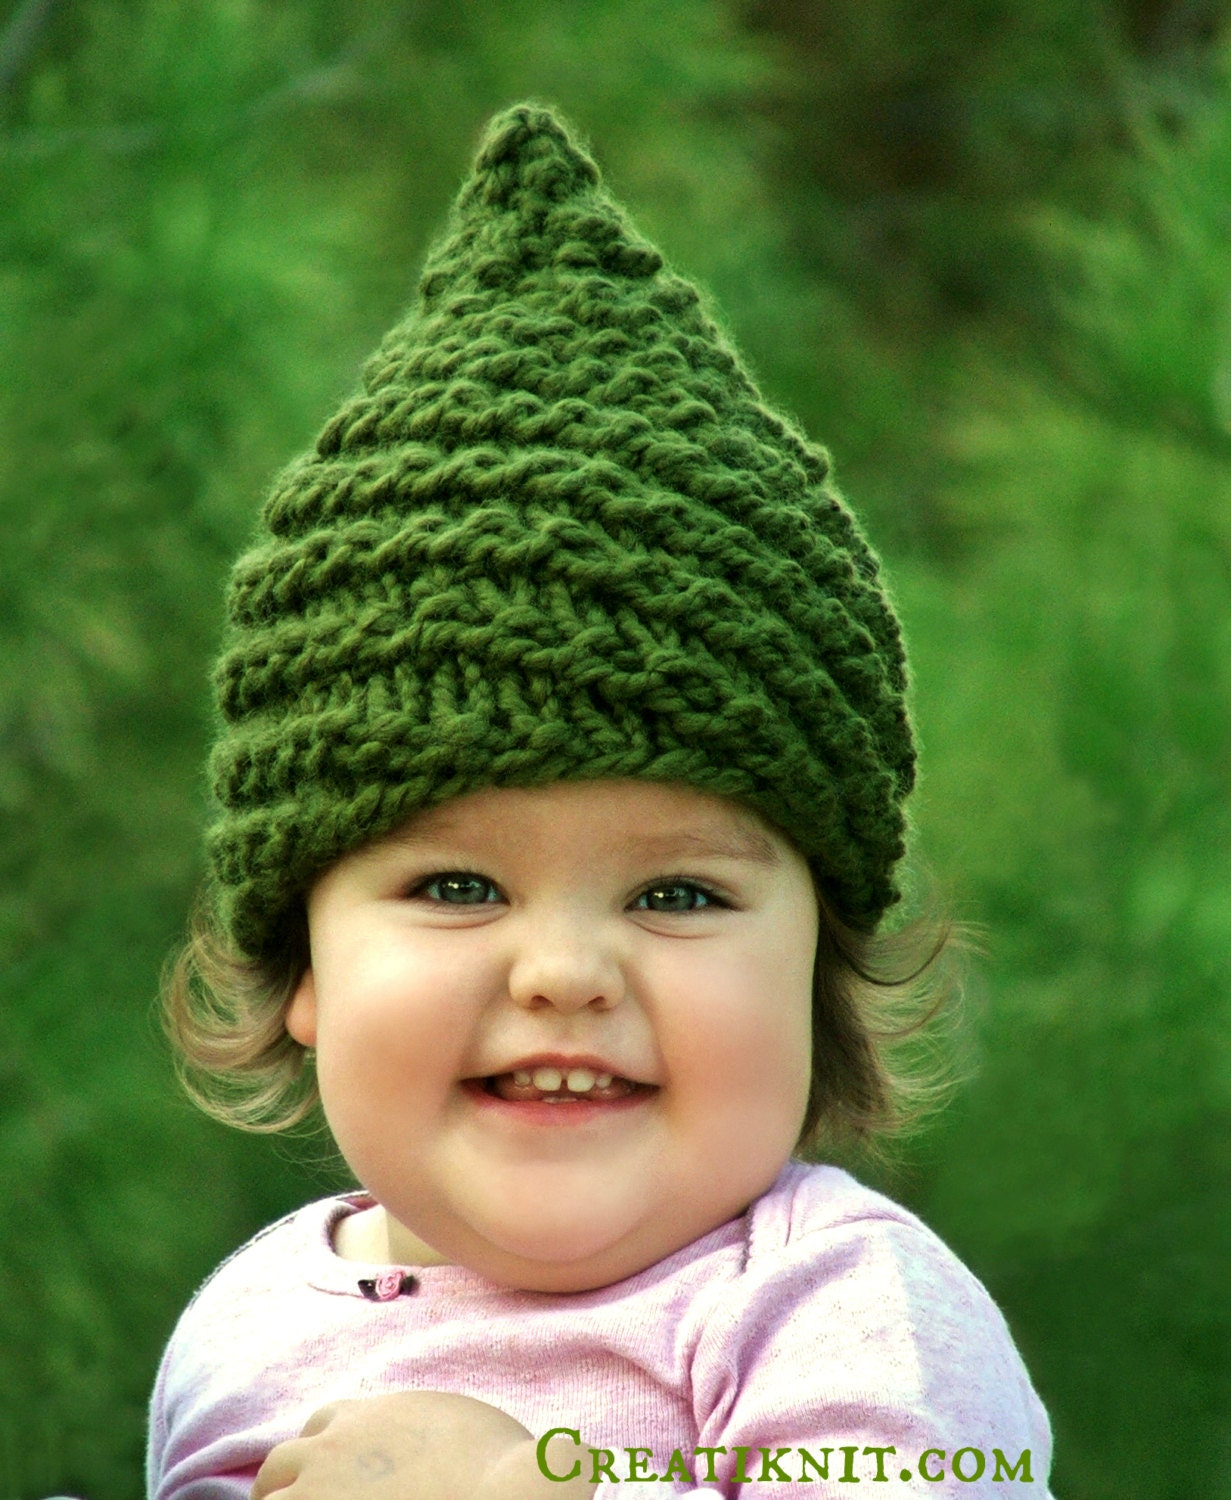 Baby Gnome: Baby Gnome Hat Baby Girl Clothes Gnome Costume Knit By